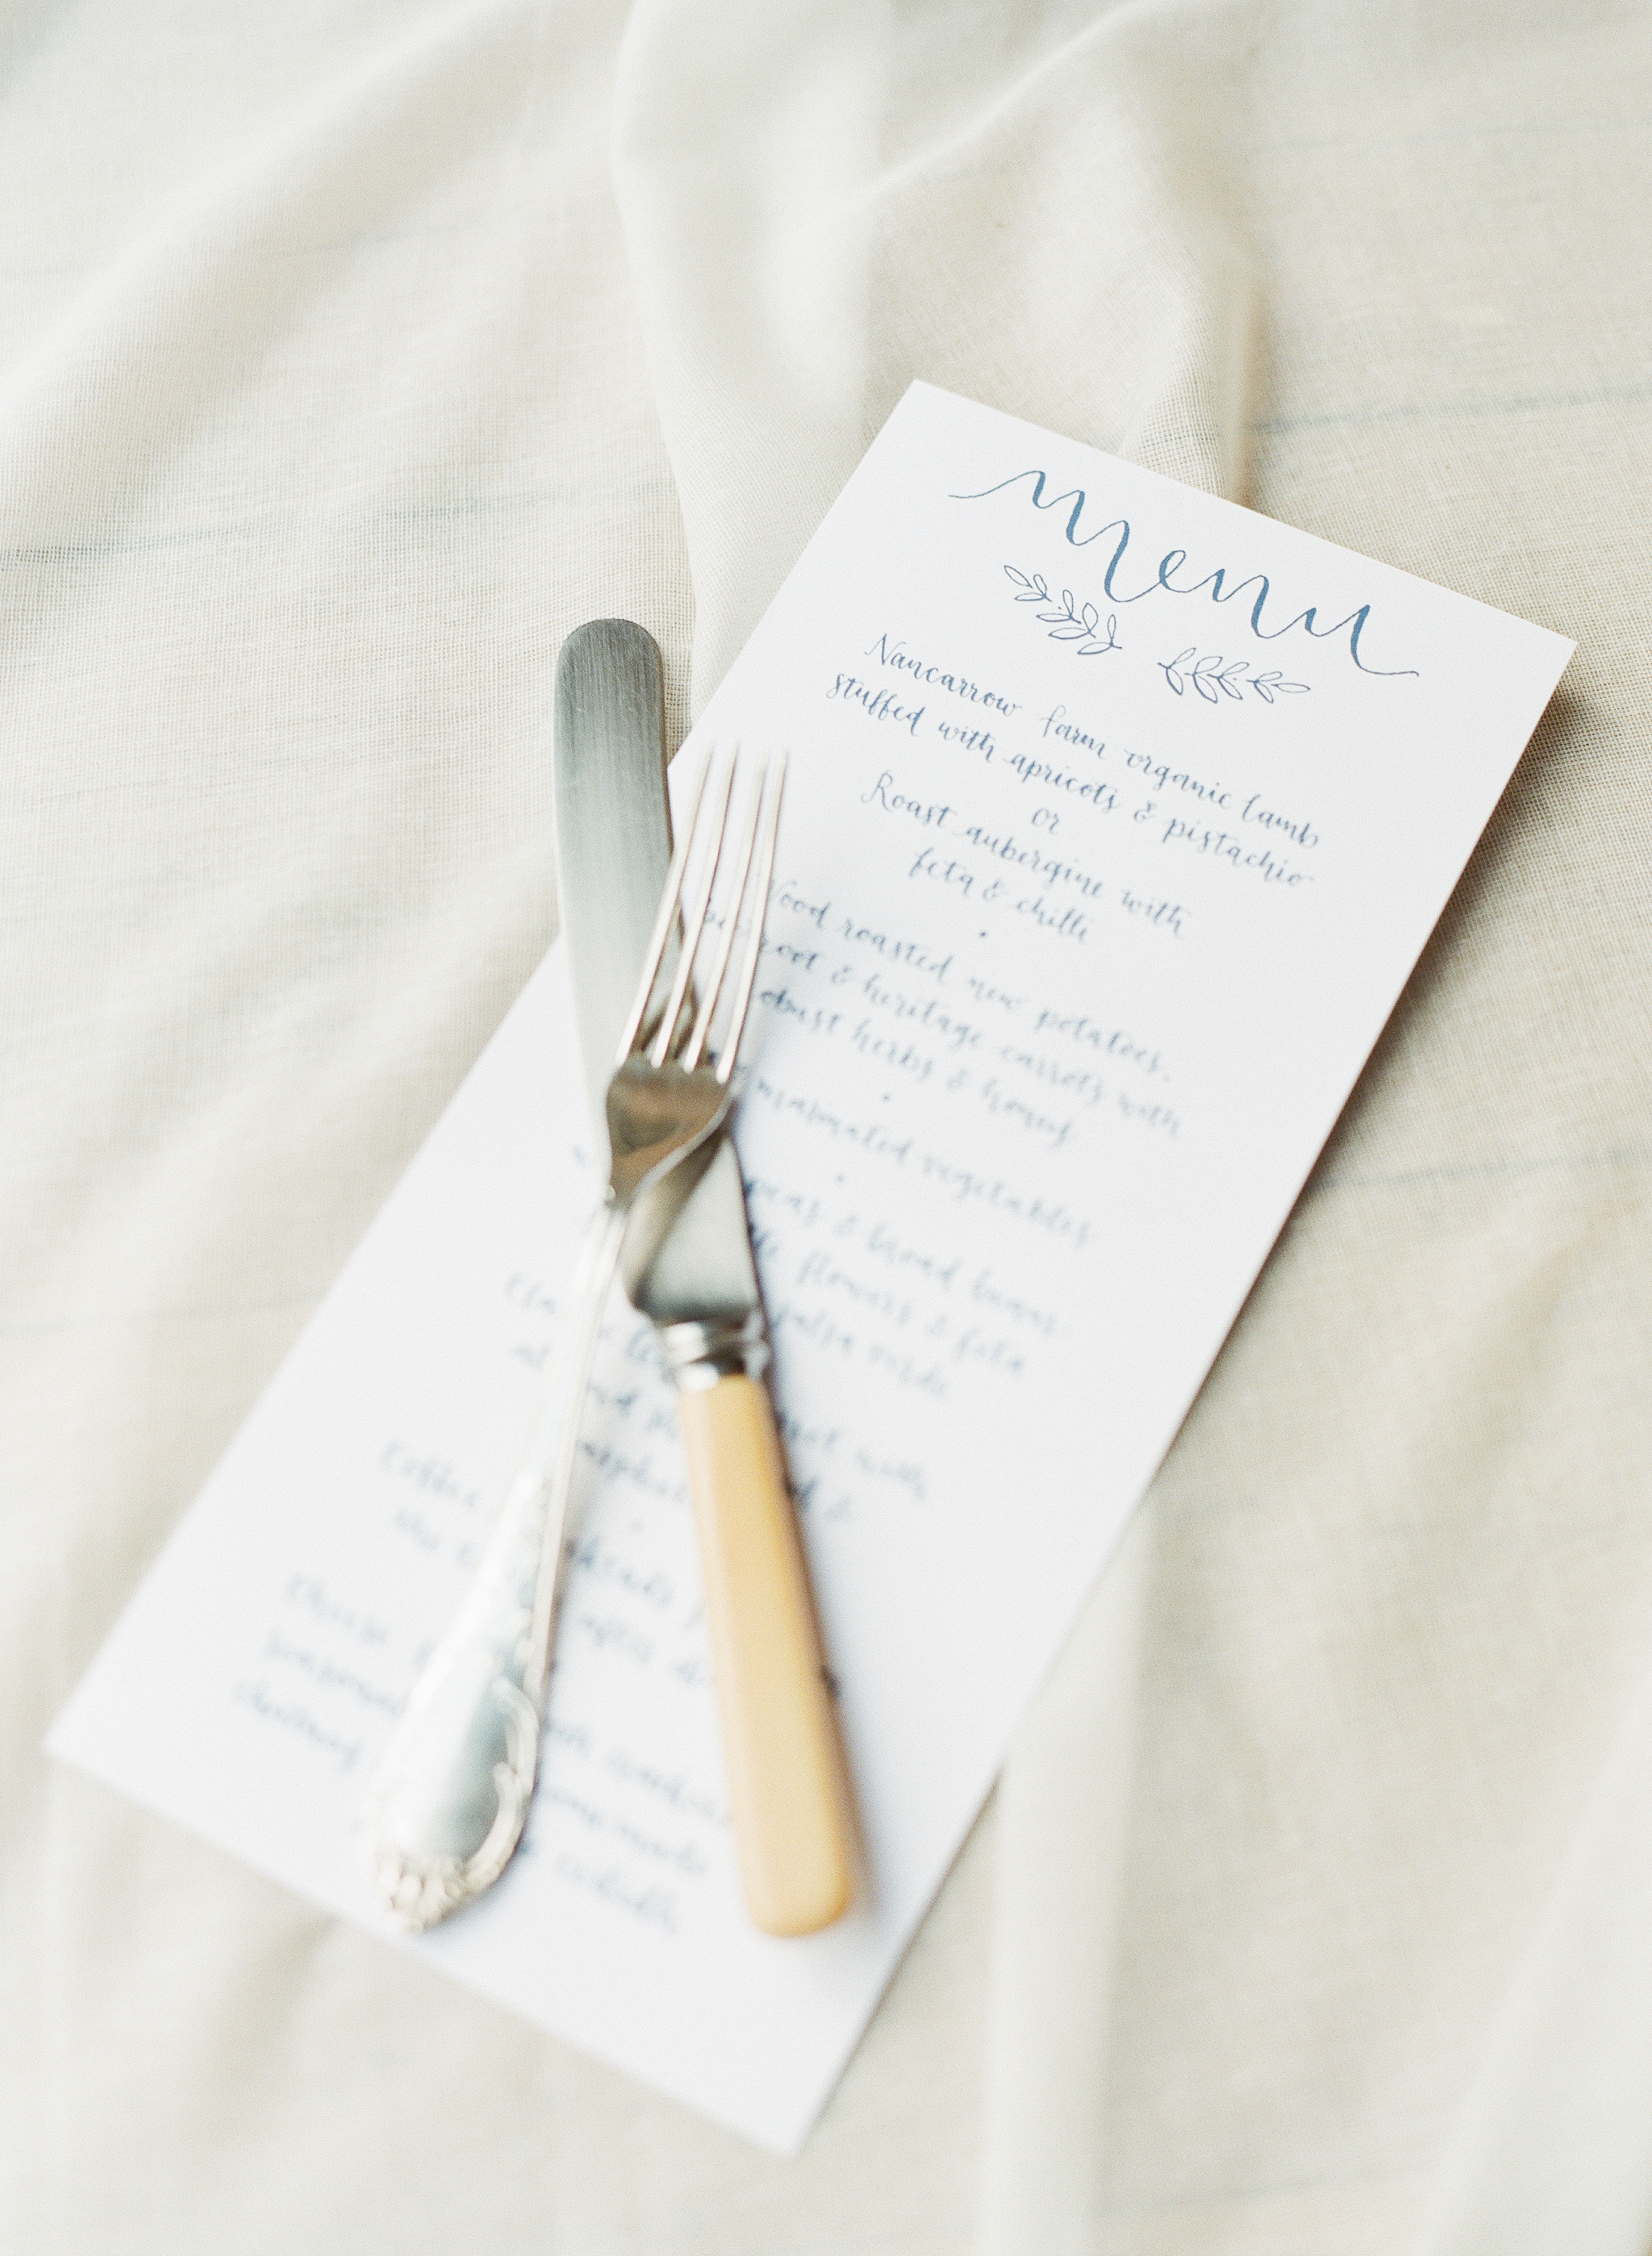 Menus   Hand lettered menus for weddings and other events.